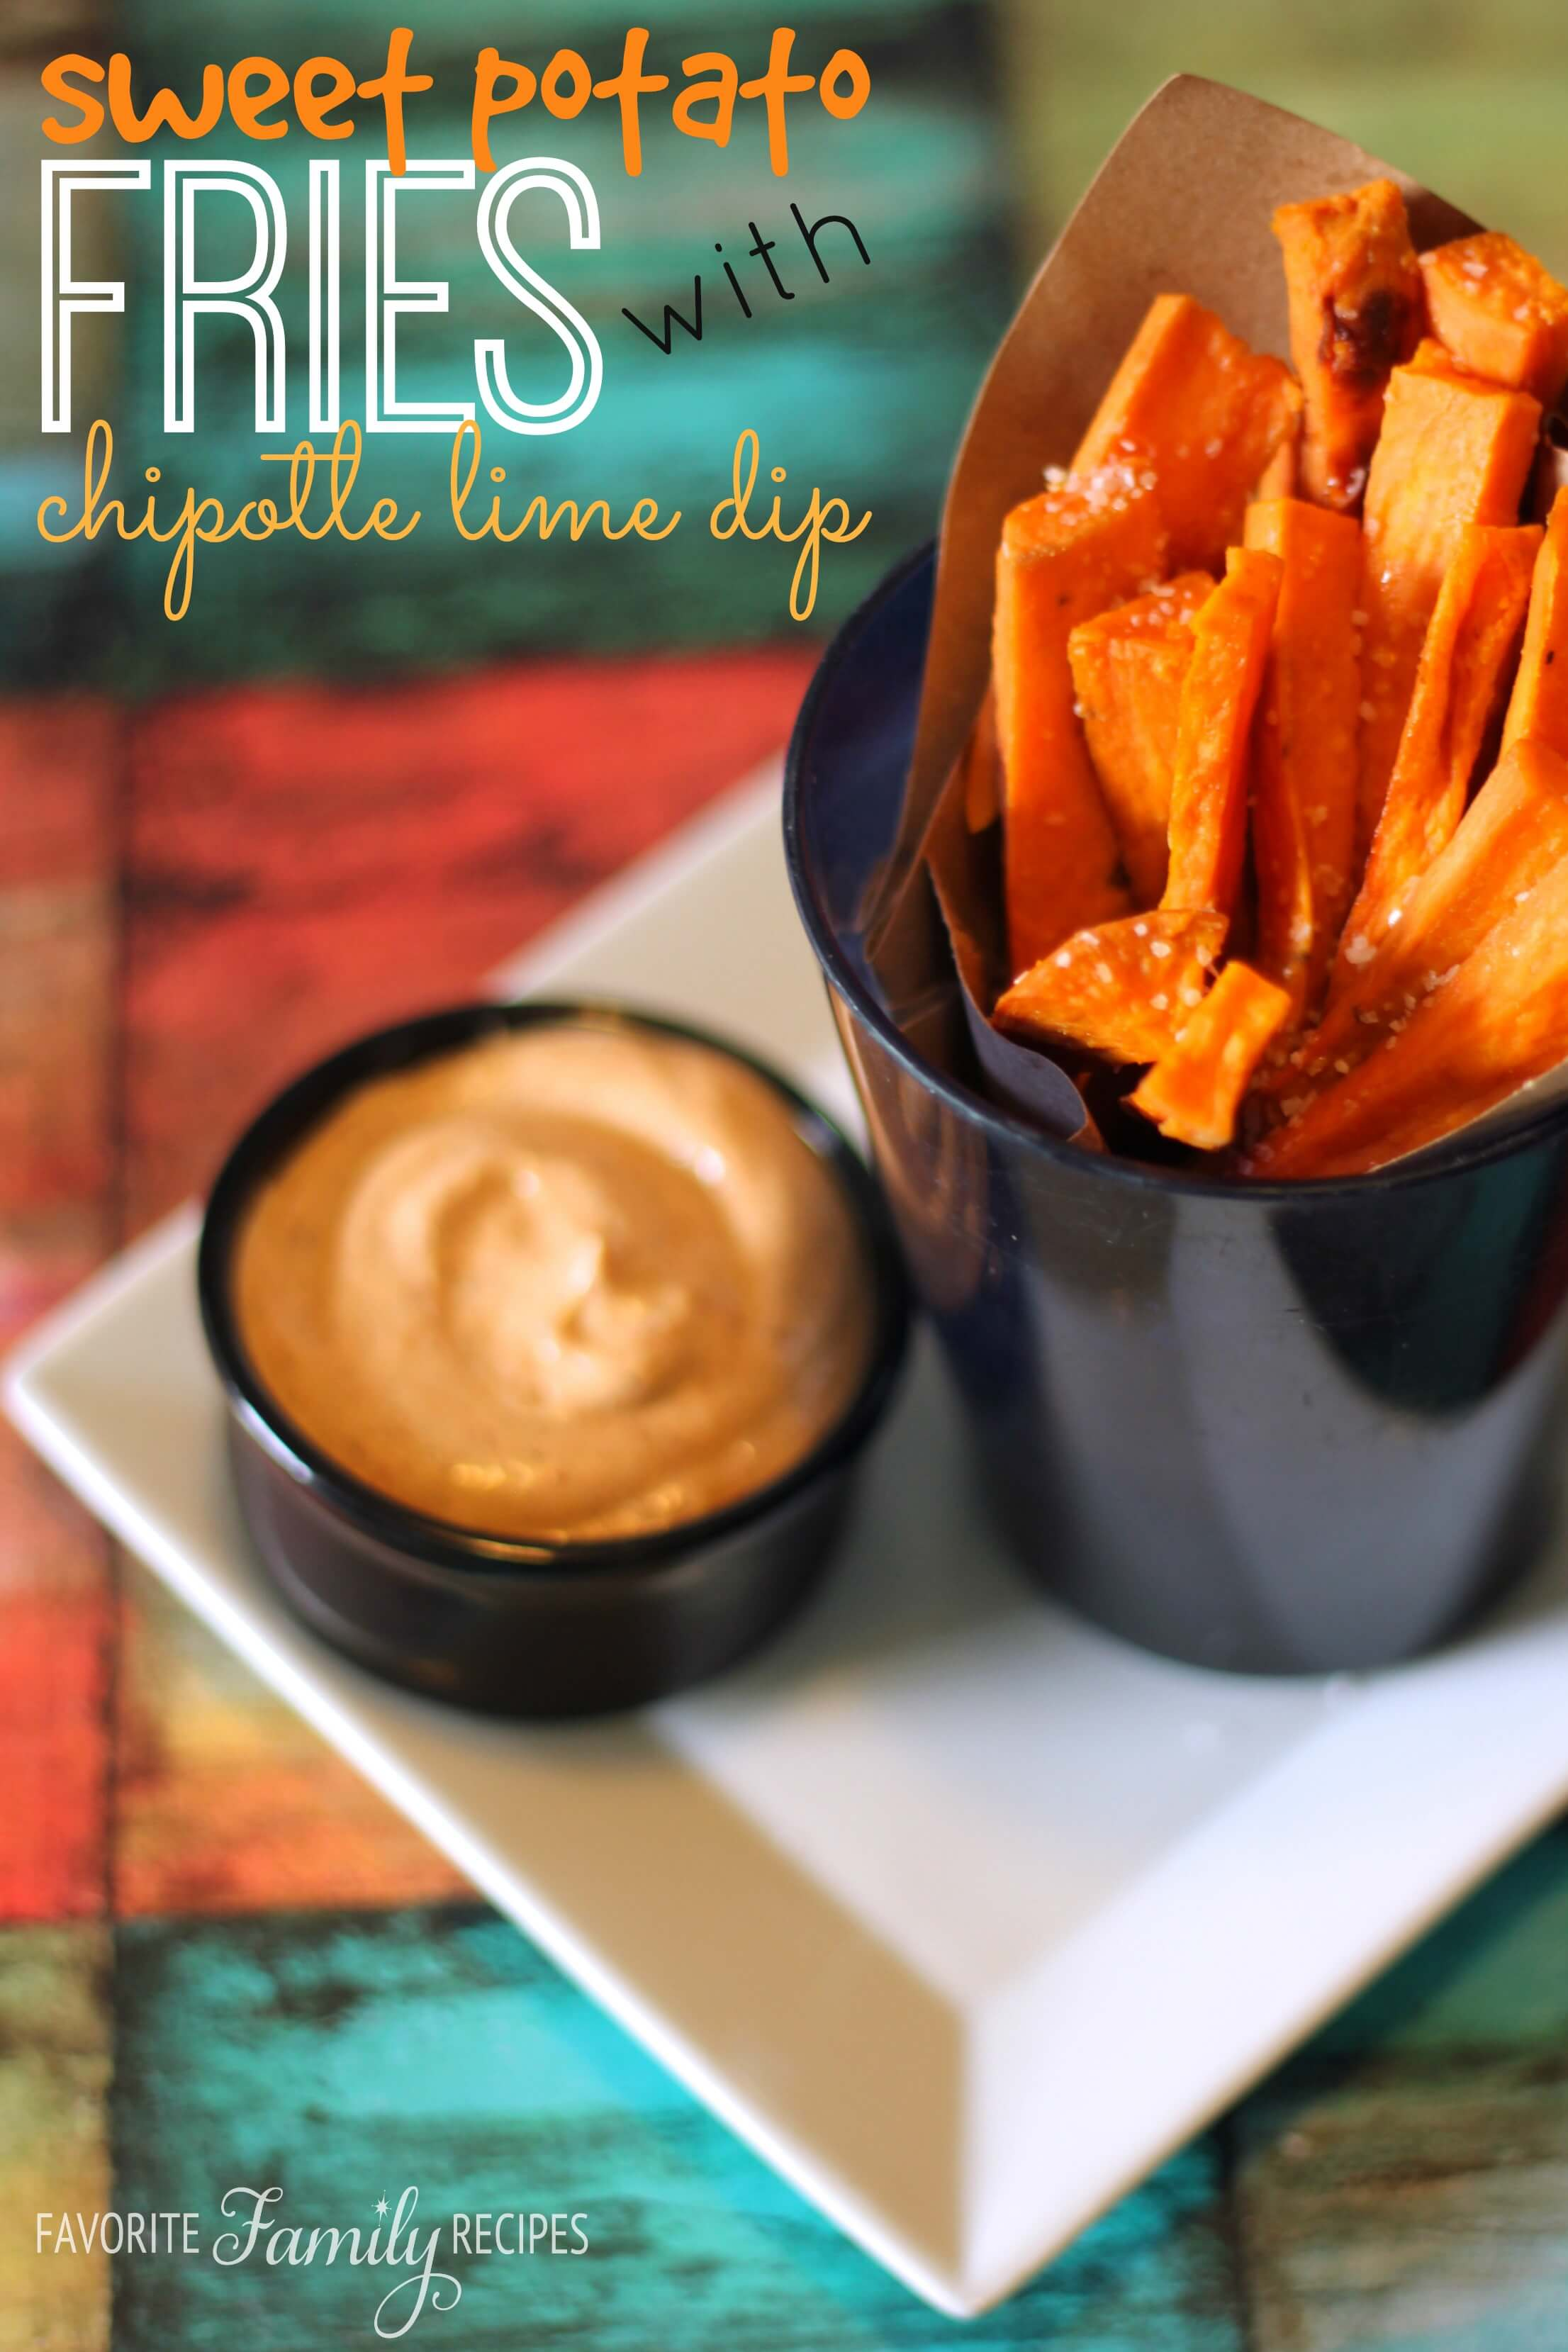 Sweet Potato Fries with Chipotle Lime Dip | Favorite Family Recipes